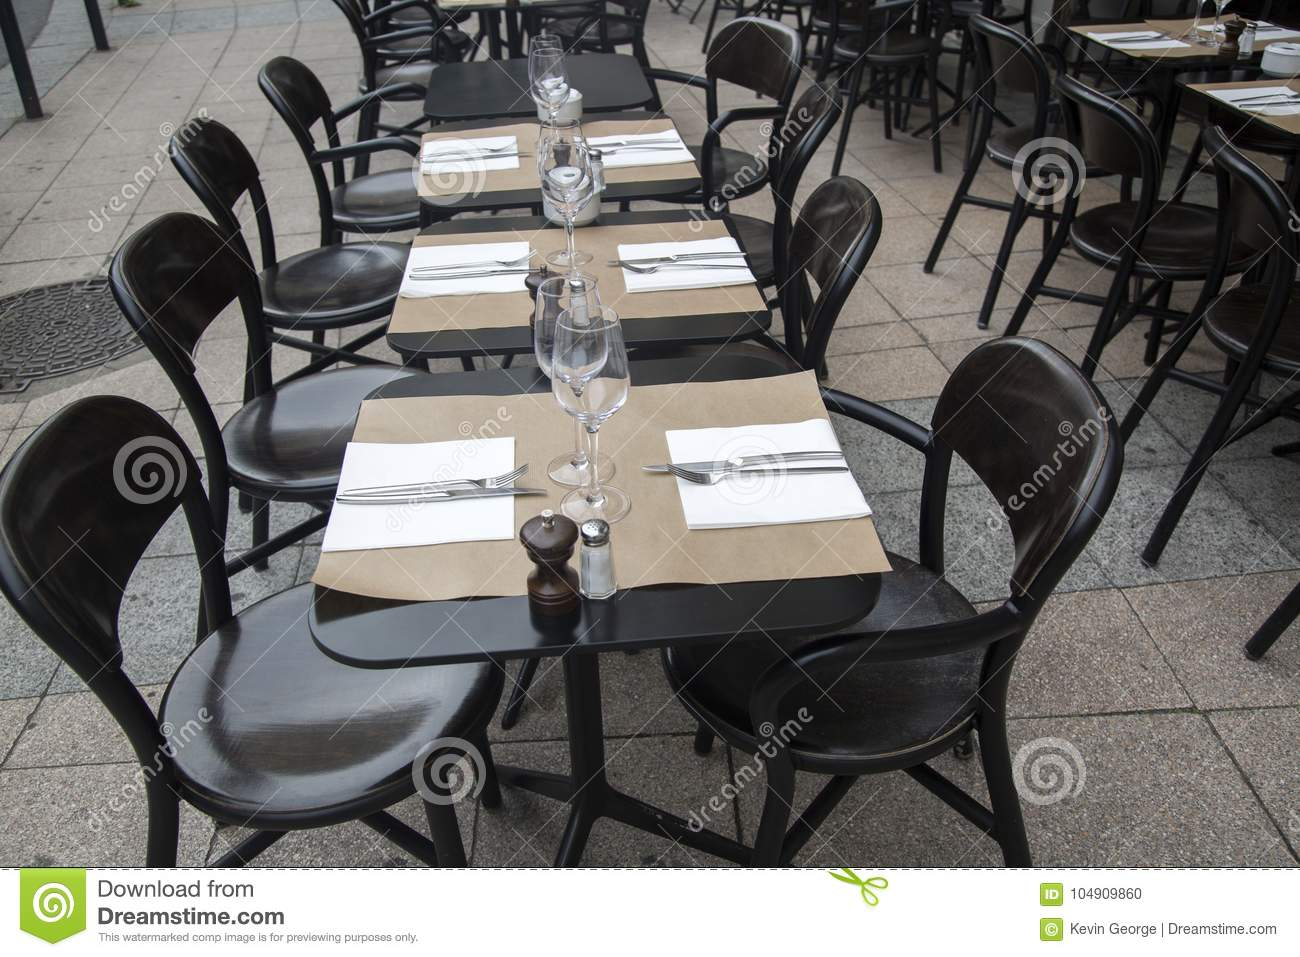 Cafen chairs tabeller